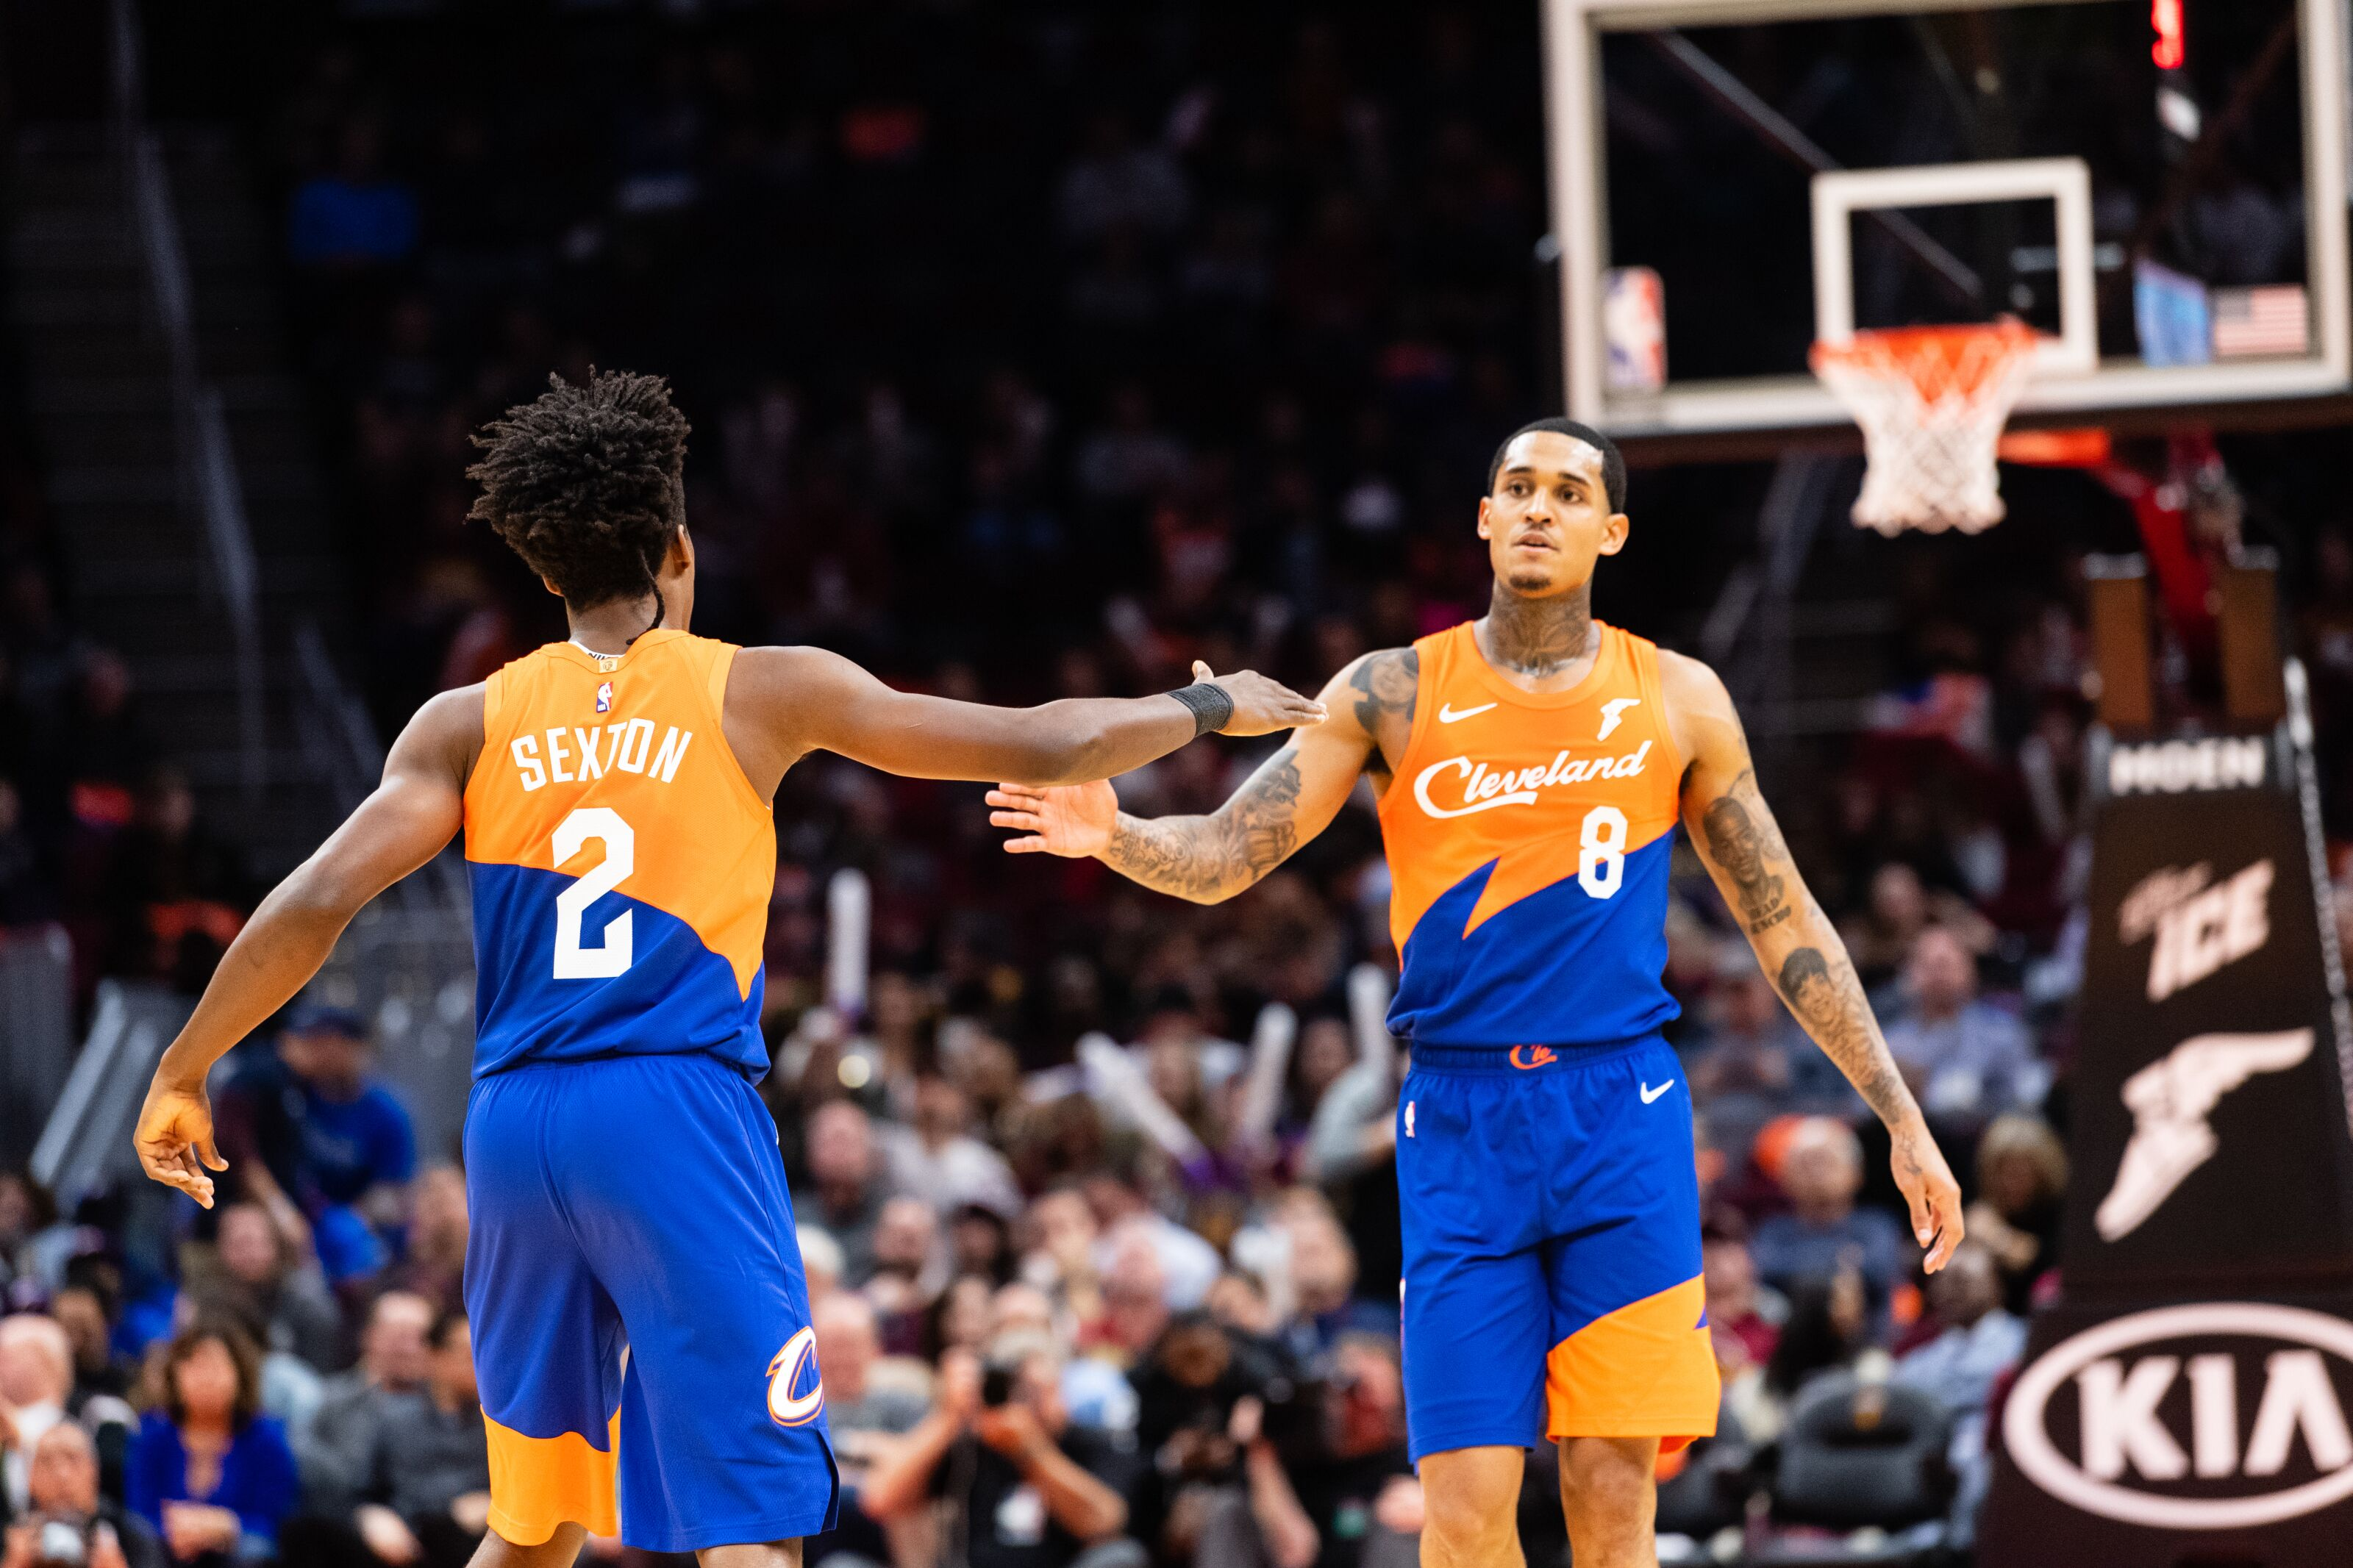 CLEVELAND, OH - NOVEMBER 13: Collin Sexton #2 of the Cleveland Cavaliers celebrates with Jordan Clarkson #8 after scoring during the second half against the Charlotte Hornets at Quicken Loans Arena on November 13, 2018 in Cleveland, Ohio. The Cavaliers defeated the Hornets 113-89. NOTE TO USER: User expressly acknowledges and agrees that, by downloading and/or using this photograph, user is consenting to the terms and conditions of the Getty Images License Agreement. (Photo by Jason Miller/Getty Images)